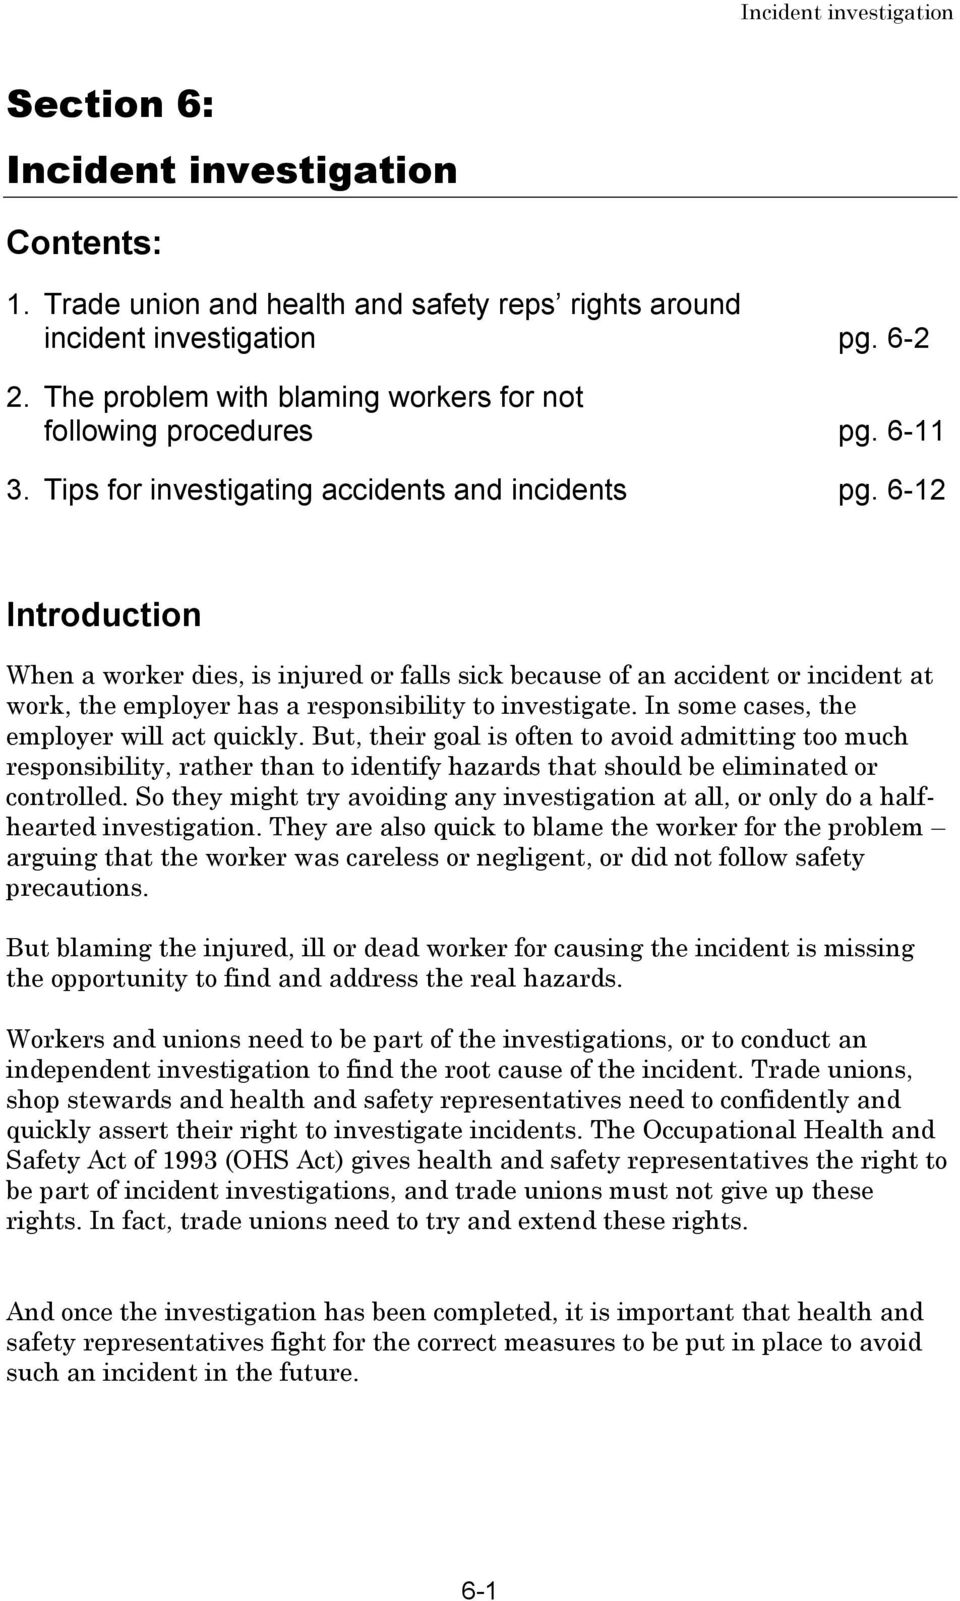 6-12 Introduction When a worker dies, is injured or falls sick because of an accident or incident at work, the employer has a responsibility to investigate.